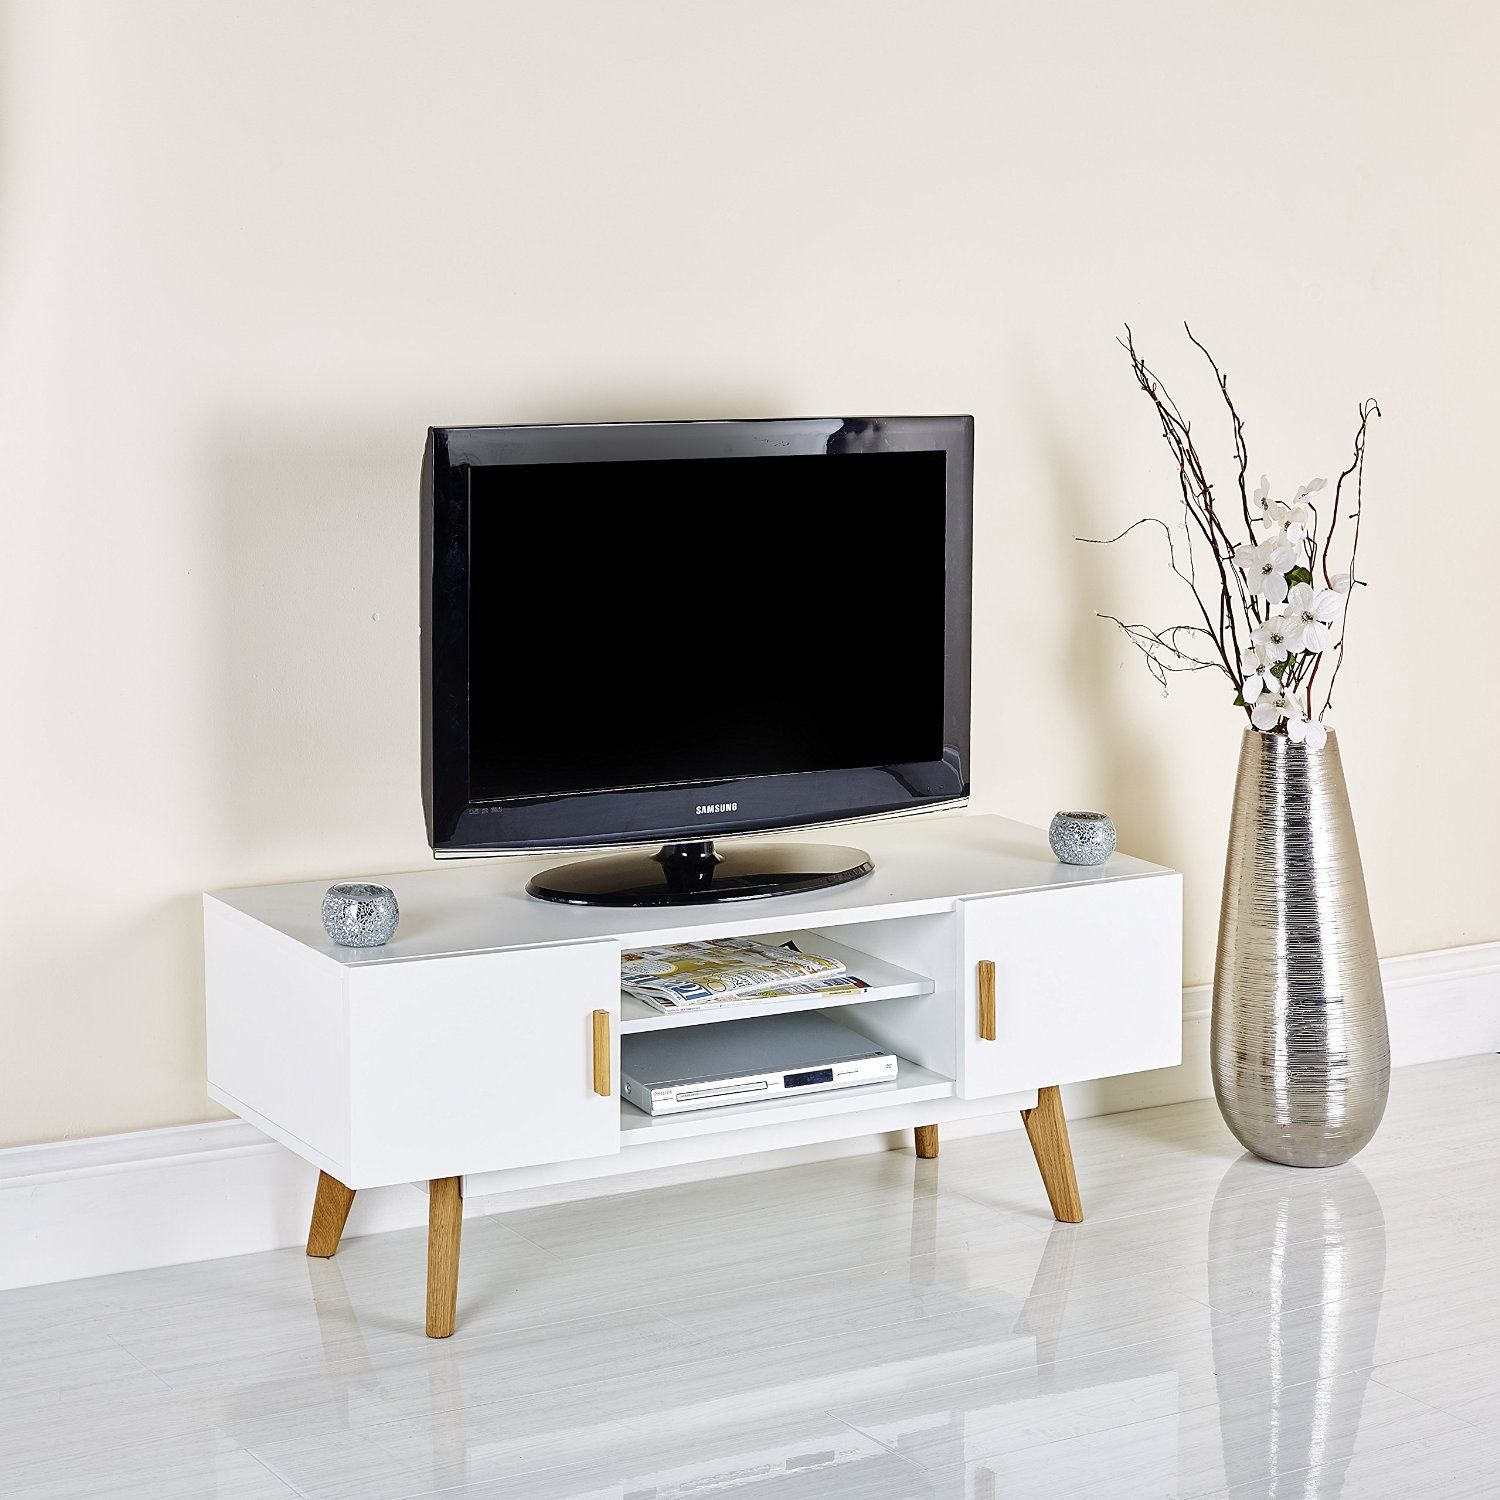 Scandinavian White Retro Tv Stand For 32 To 55 Television Entertainment Unit Cabinet With Shelves White Retro